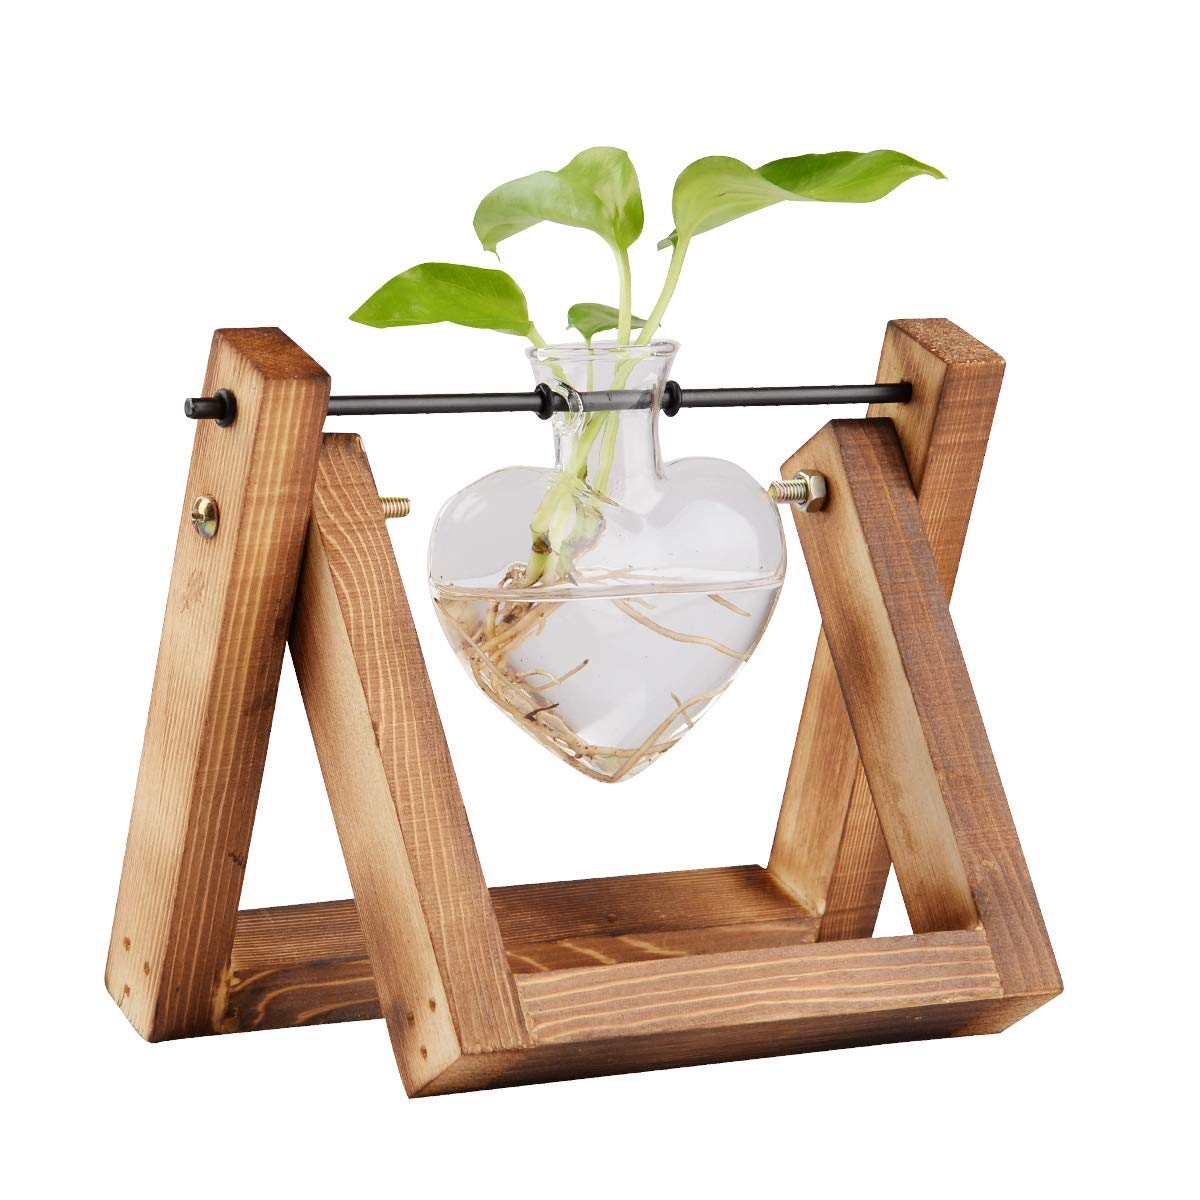 jiabang Glass Planter Terrarium with Retro Solid Wooden Stand for Hydroponics Plants Flowers, Home Garden Wedding Decor, Desktop Table Shelf Showpiece